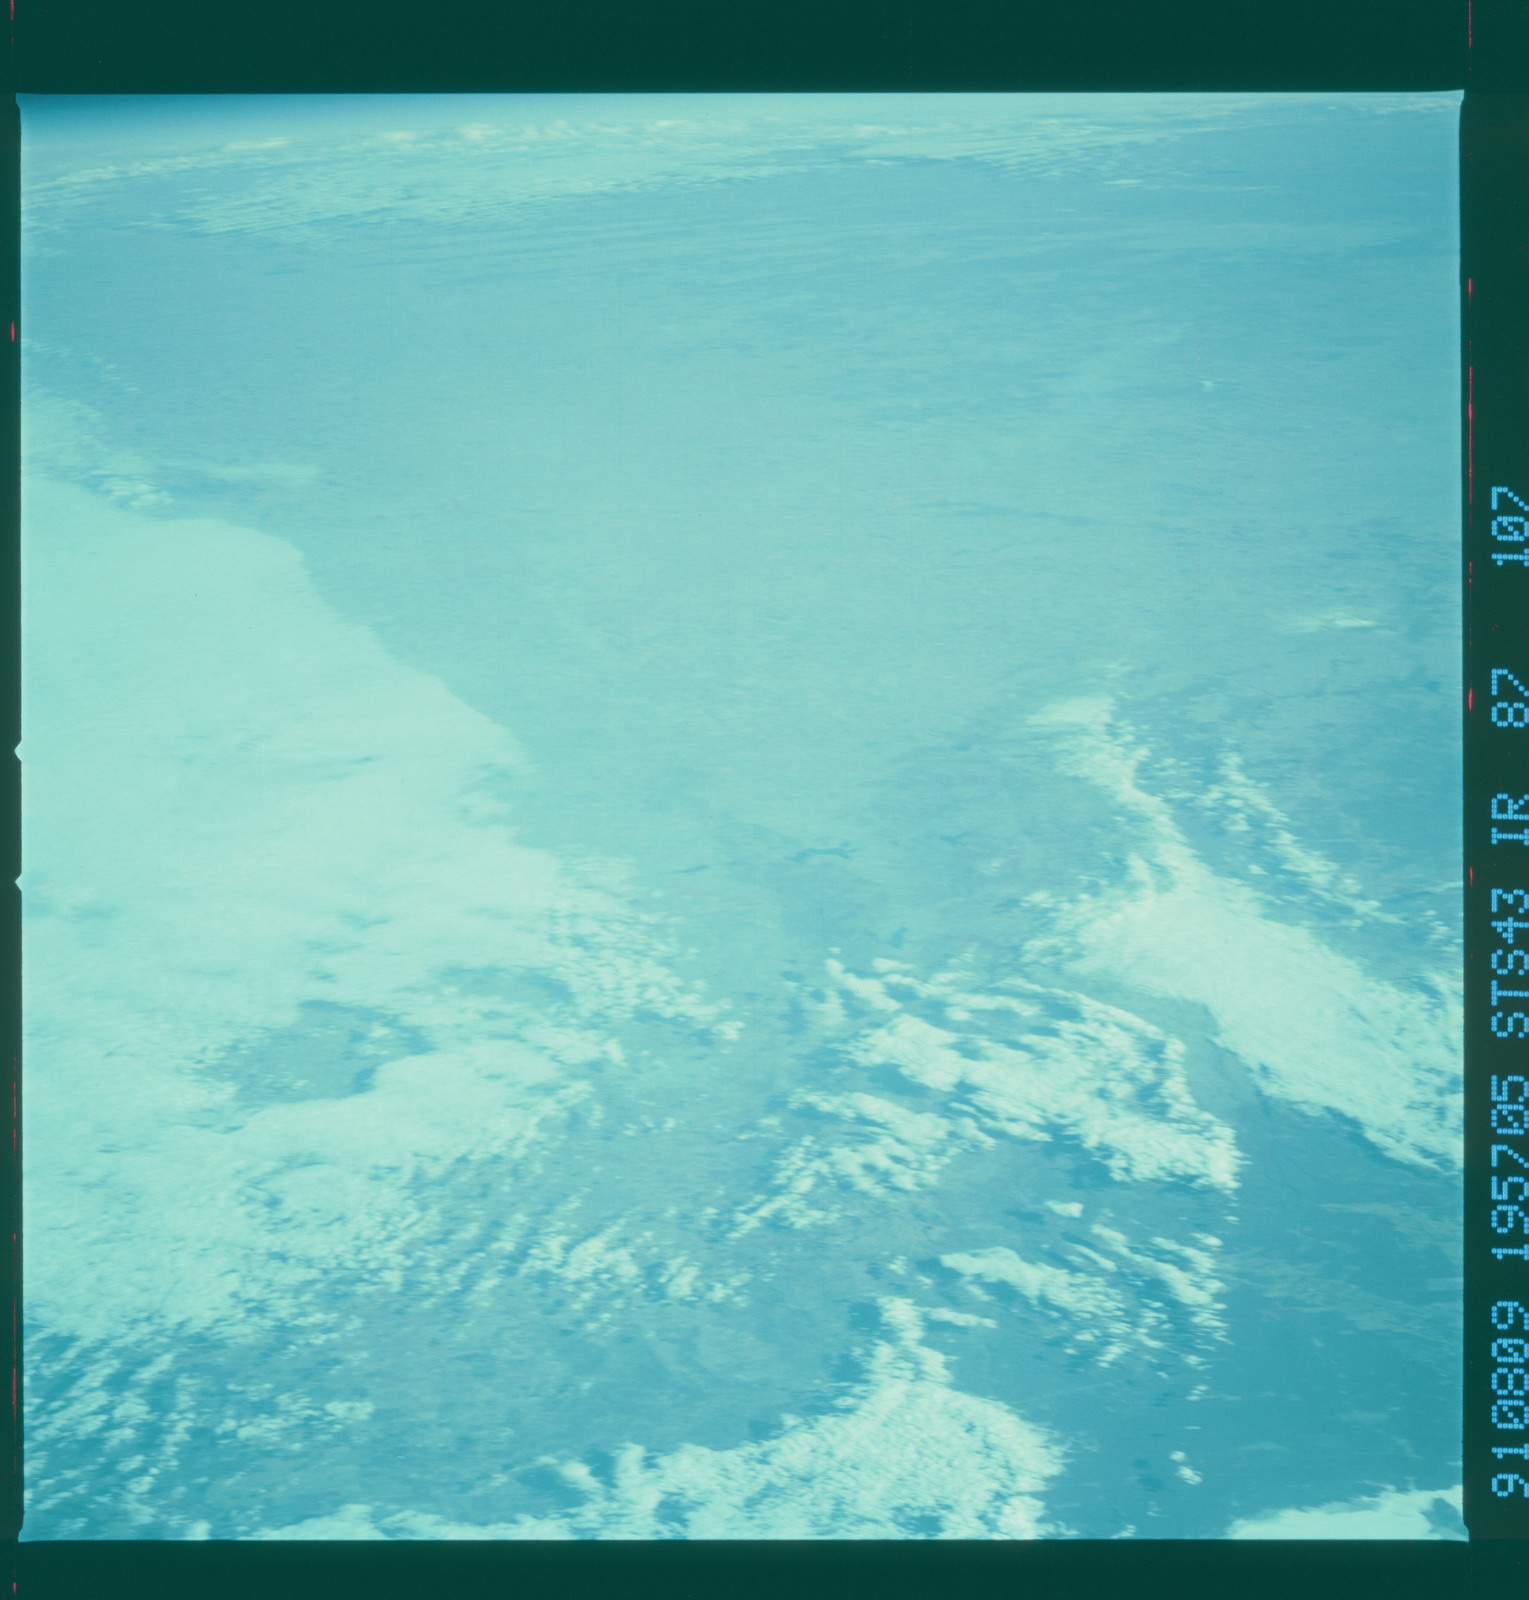 S43-87-107 - STS-043 - STS-43 earth observations